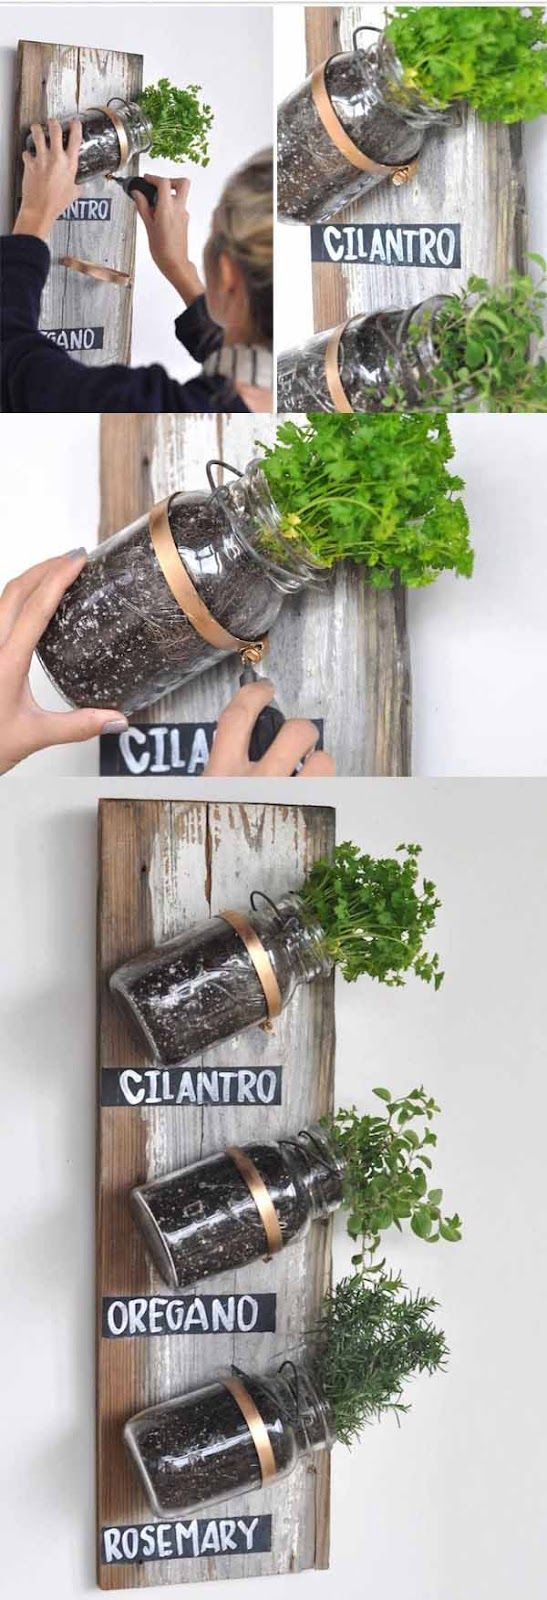 Live in an apartment? You can have an herb garden, too. Use mason jars and a wooden board on a spare kitchen wall.